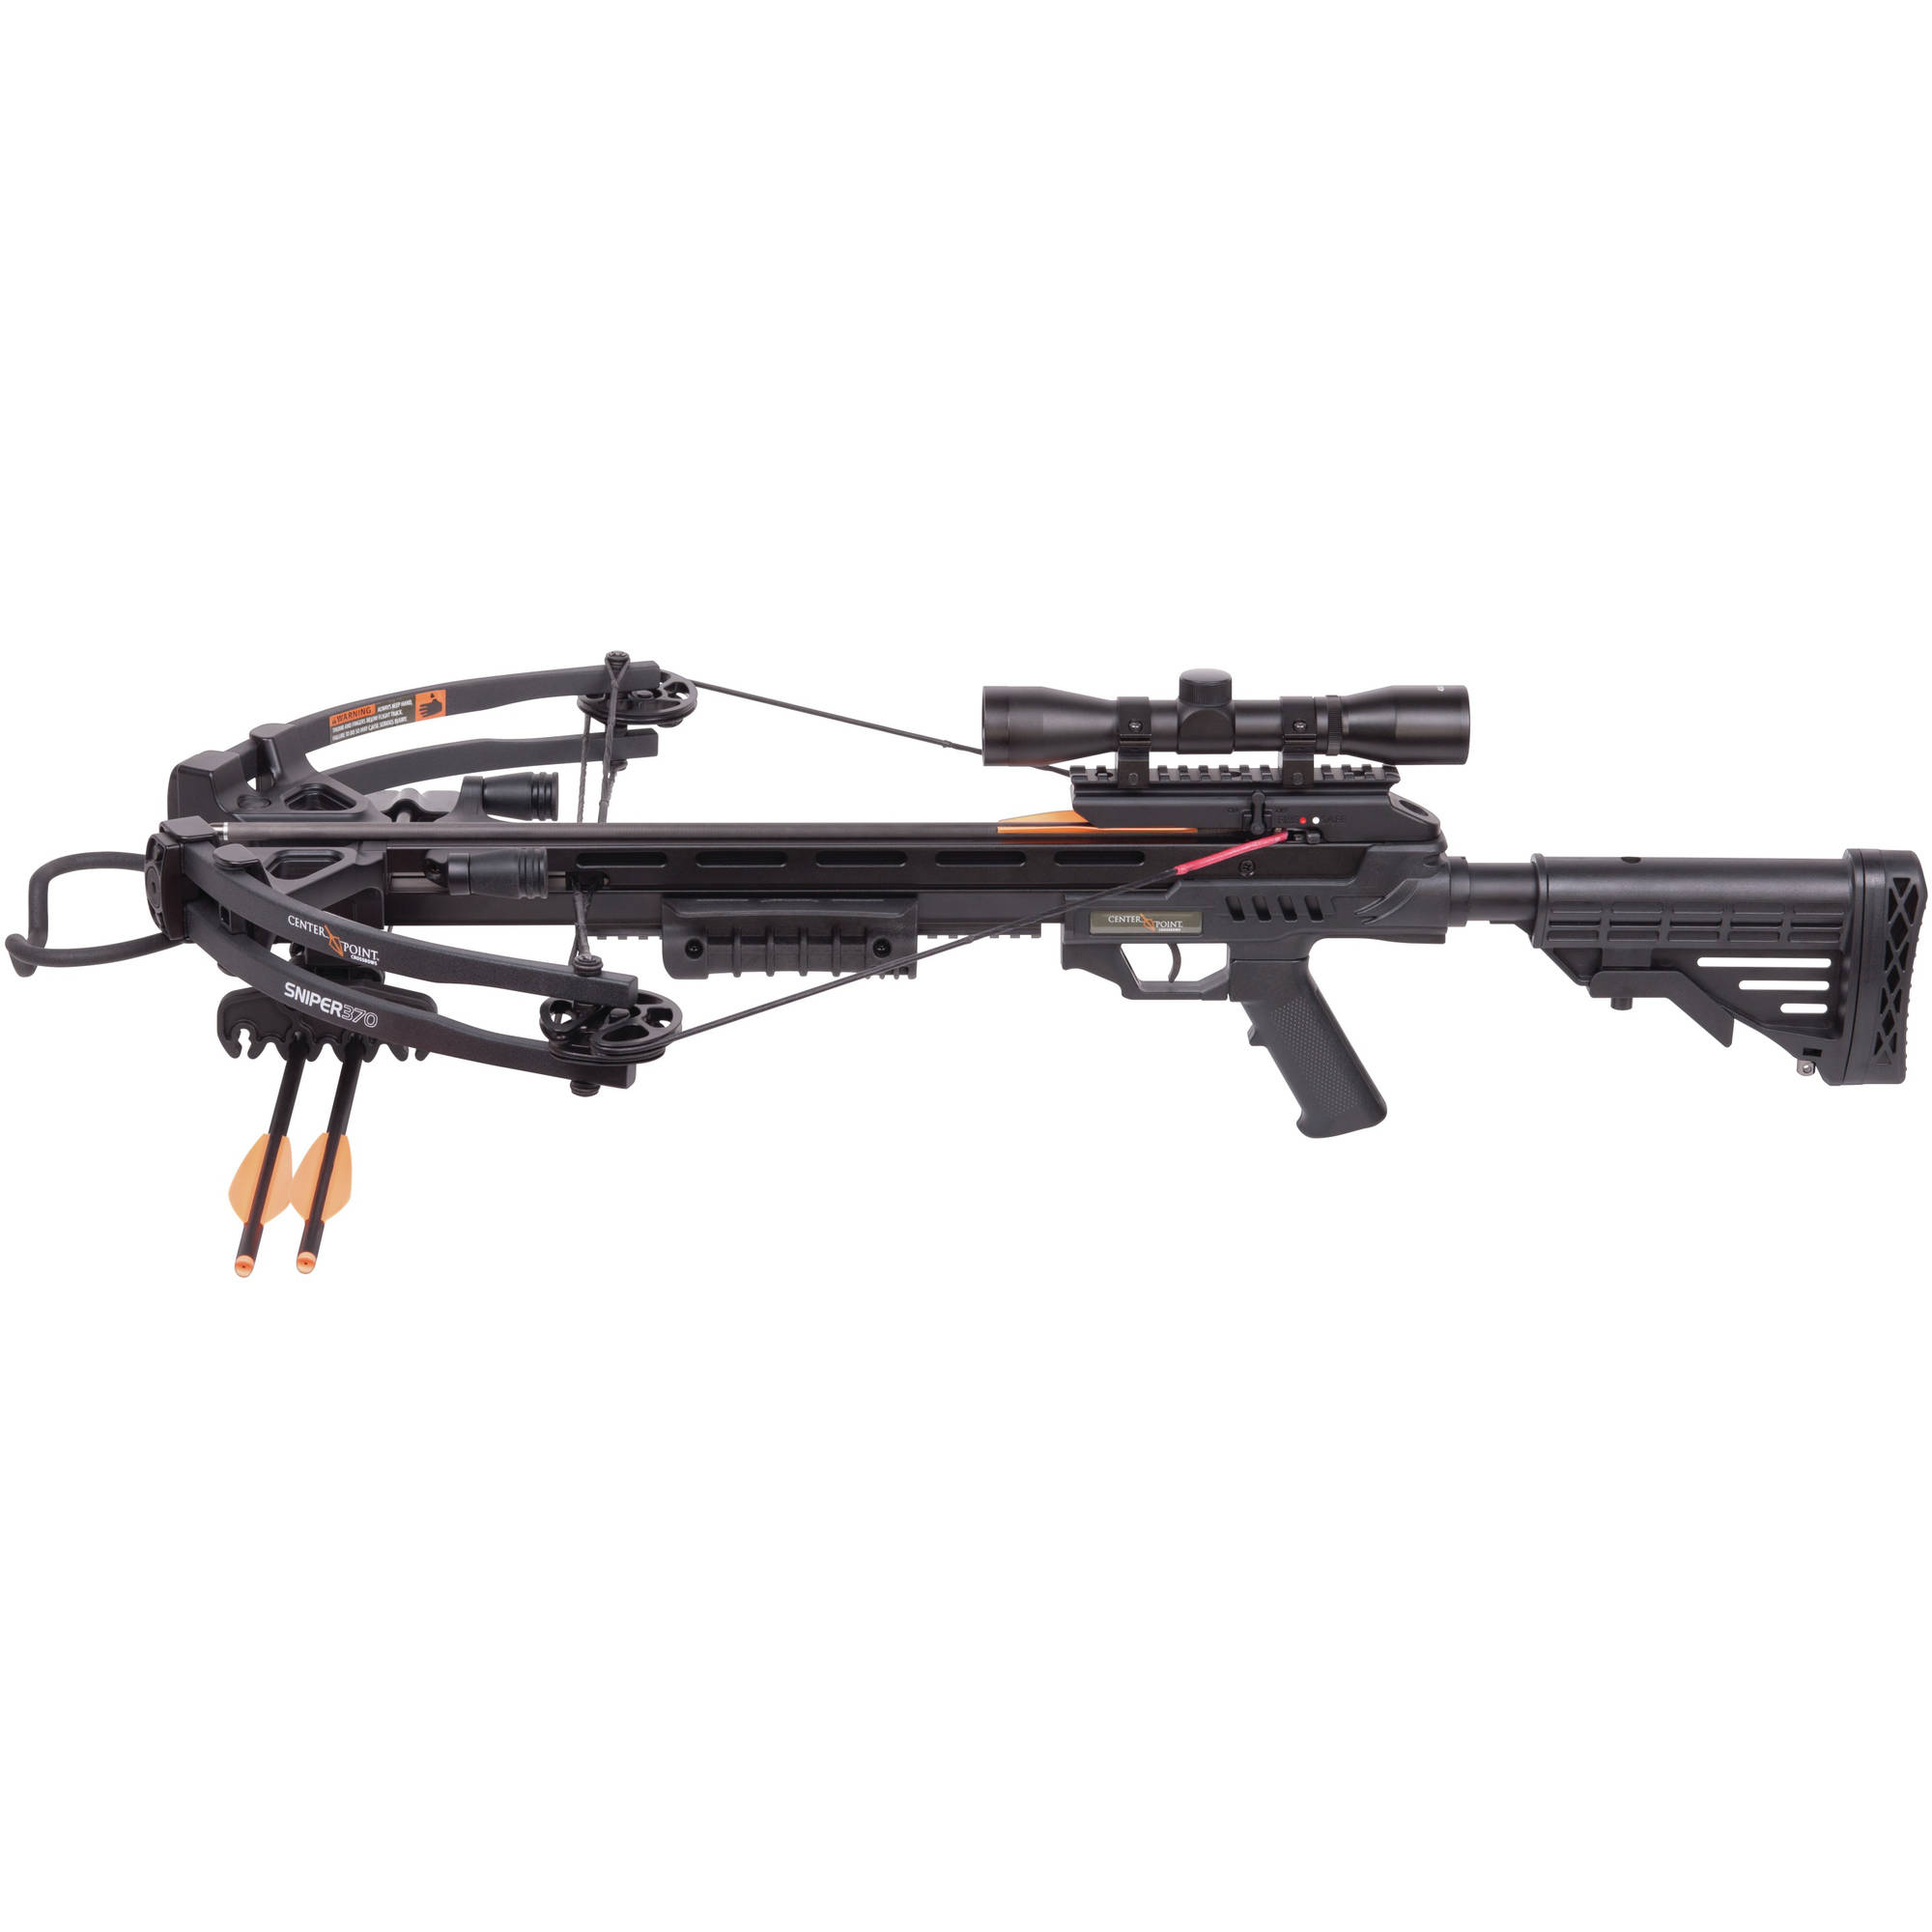 CenterPoint Archery AXCS185CK Compound Crossbow Kit 370fps by CenterPoint